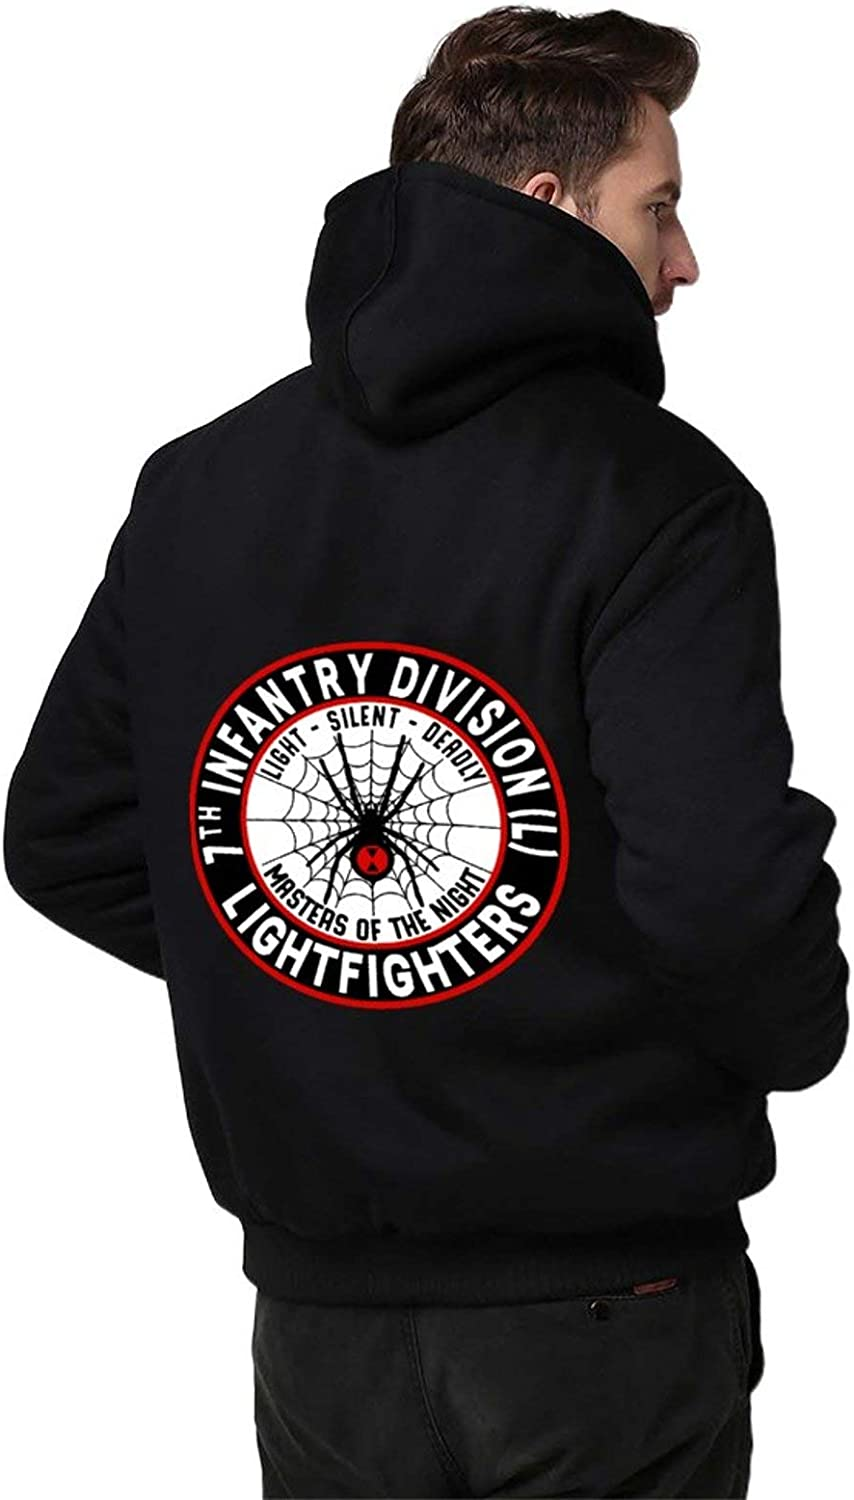 7th Infantry Division Men Hoodie Zipper Warmth Thickened Plus Fleece Jacket Black